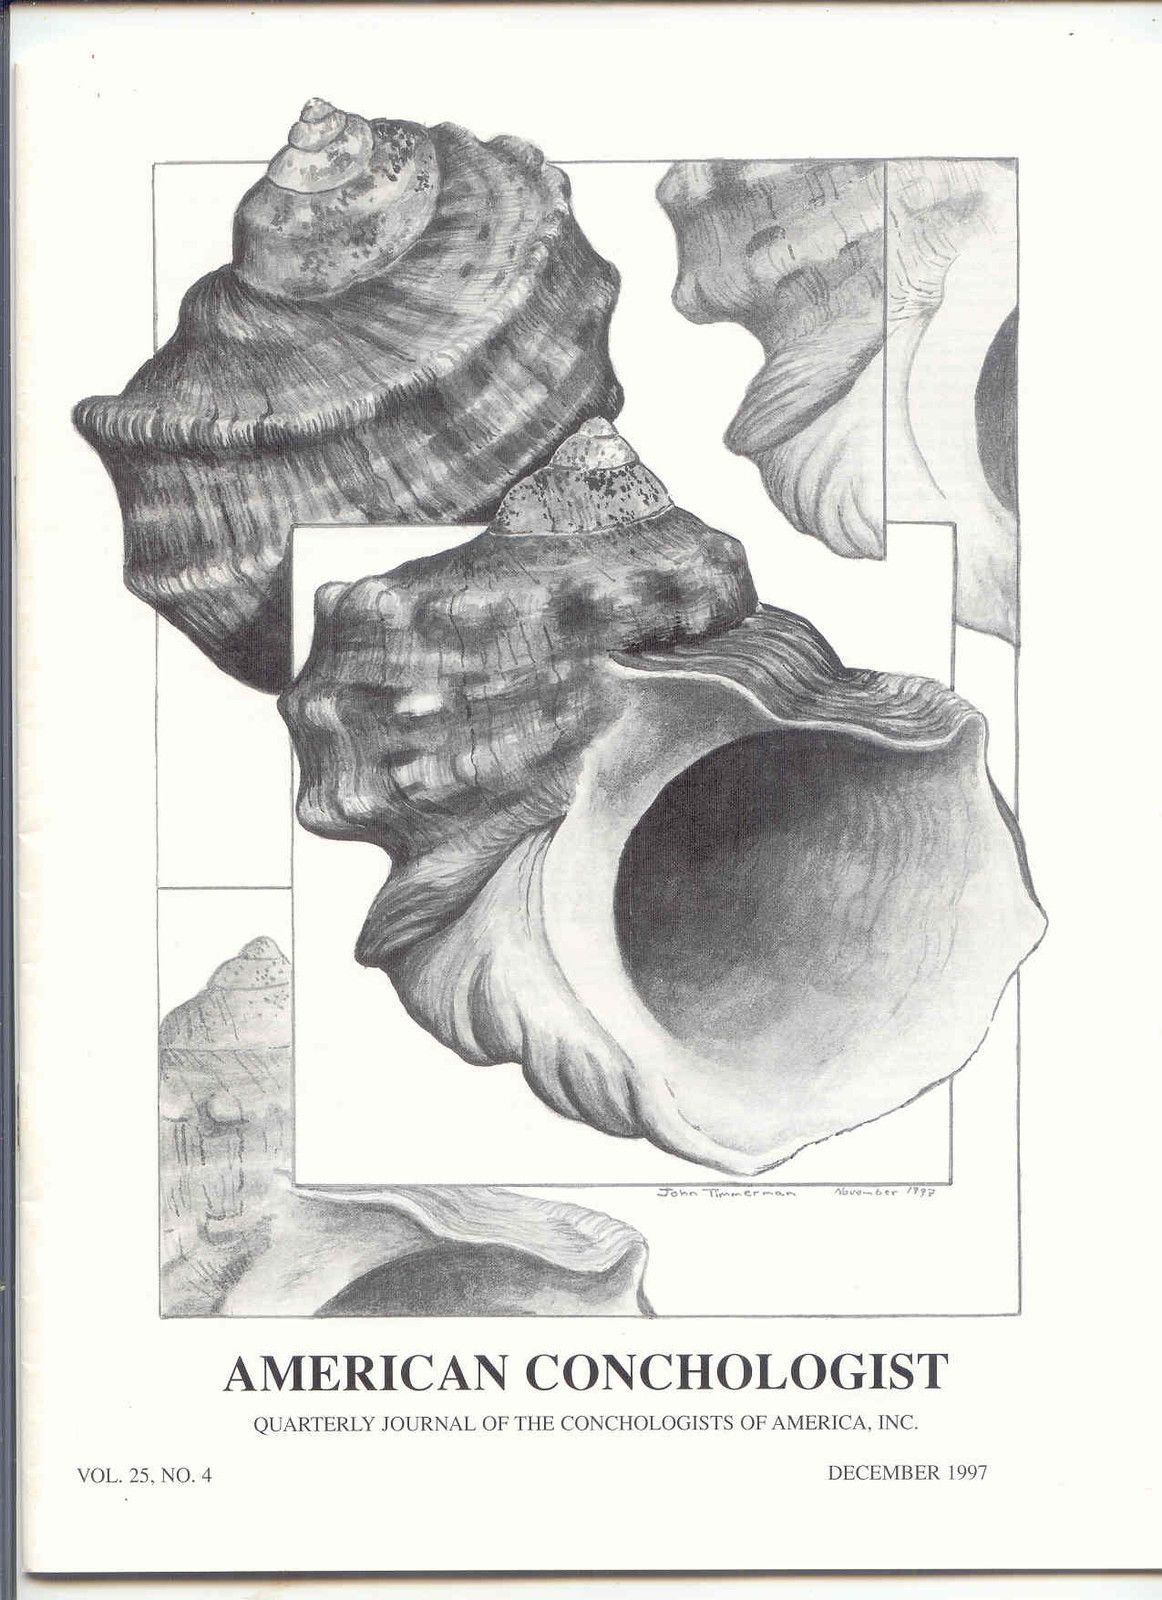 American Conchologist 12 97 With Drawing Of Turbo By John